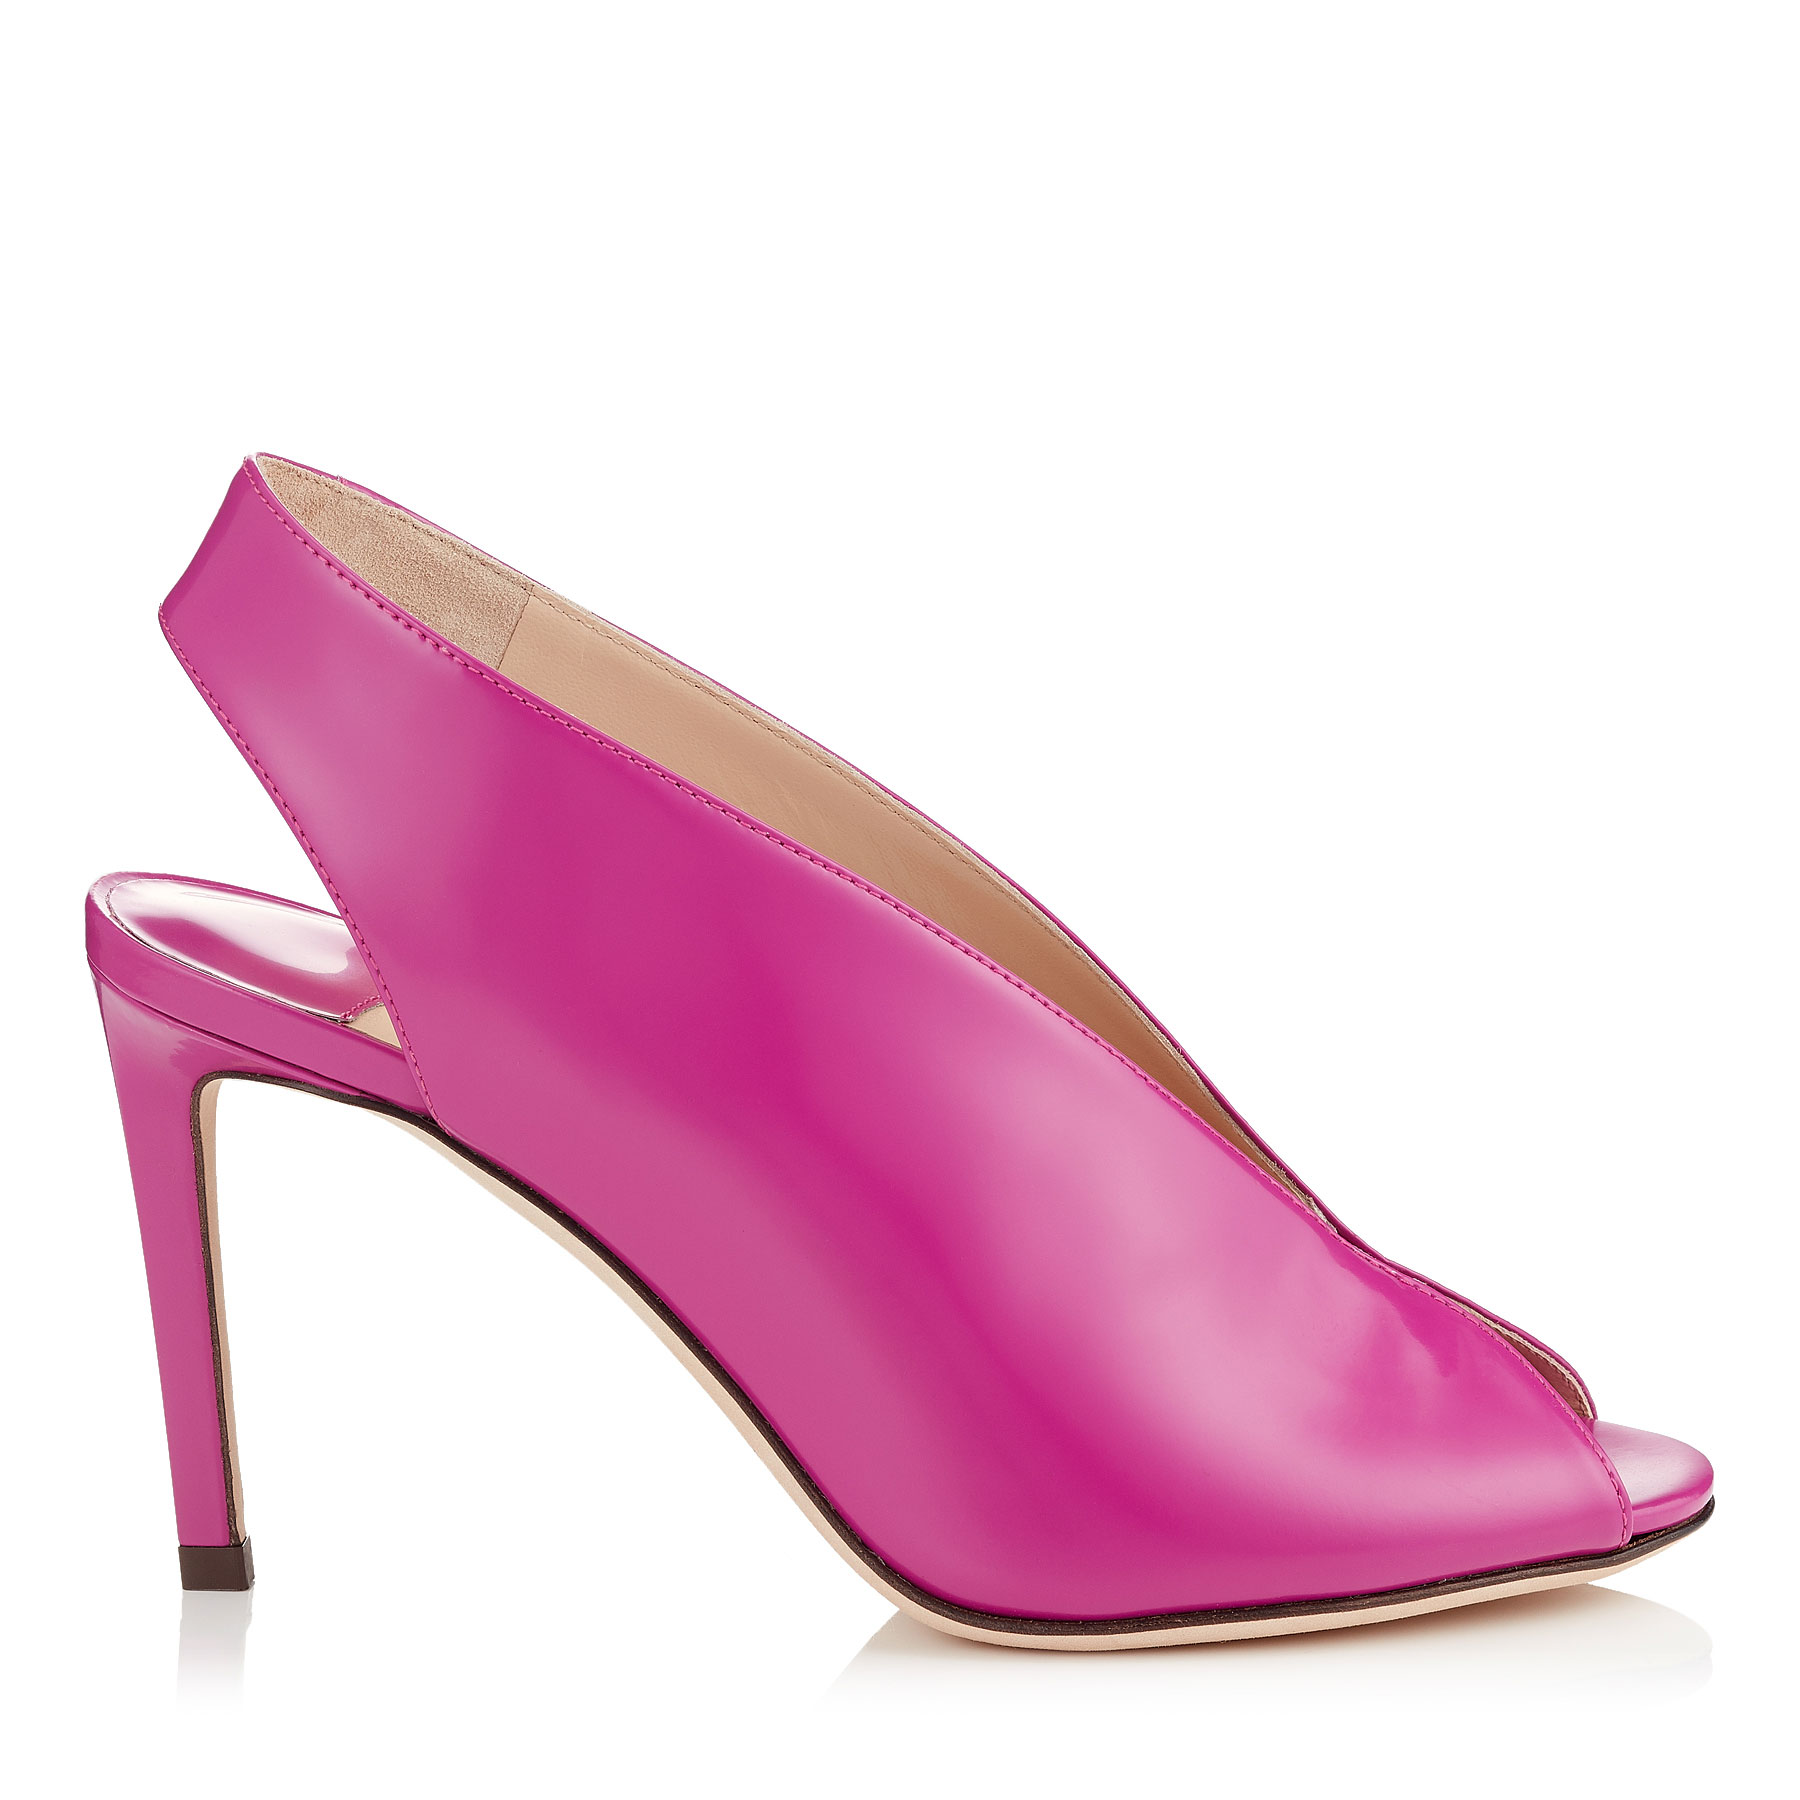 SHAR 85 Magenta Liquid Leather Sandal Booties by Jimmy Choo